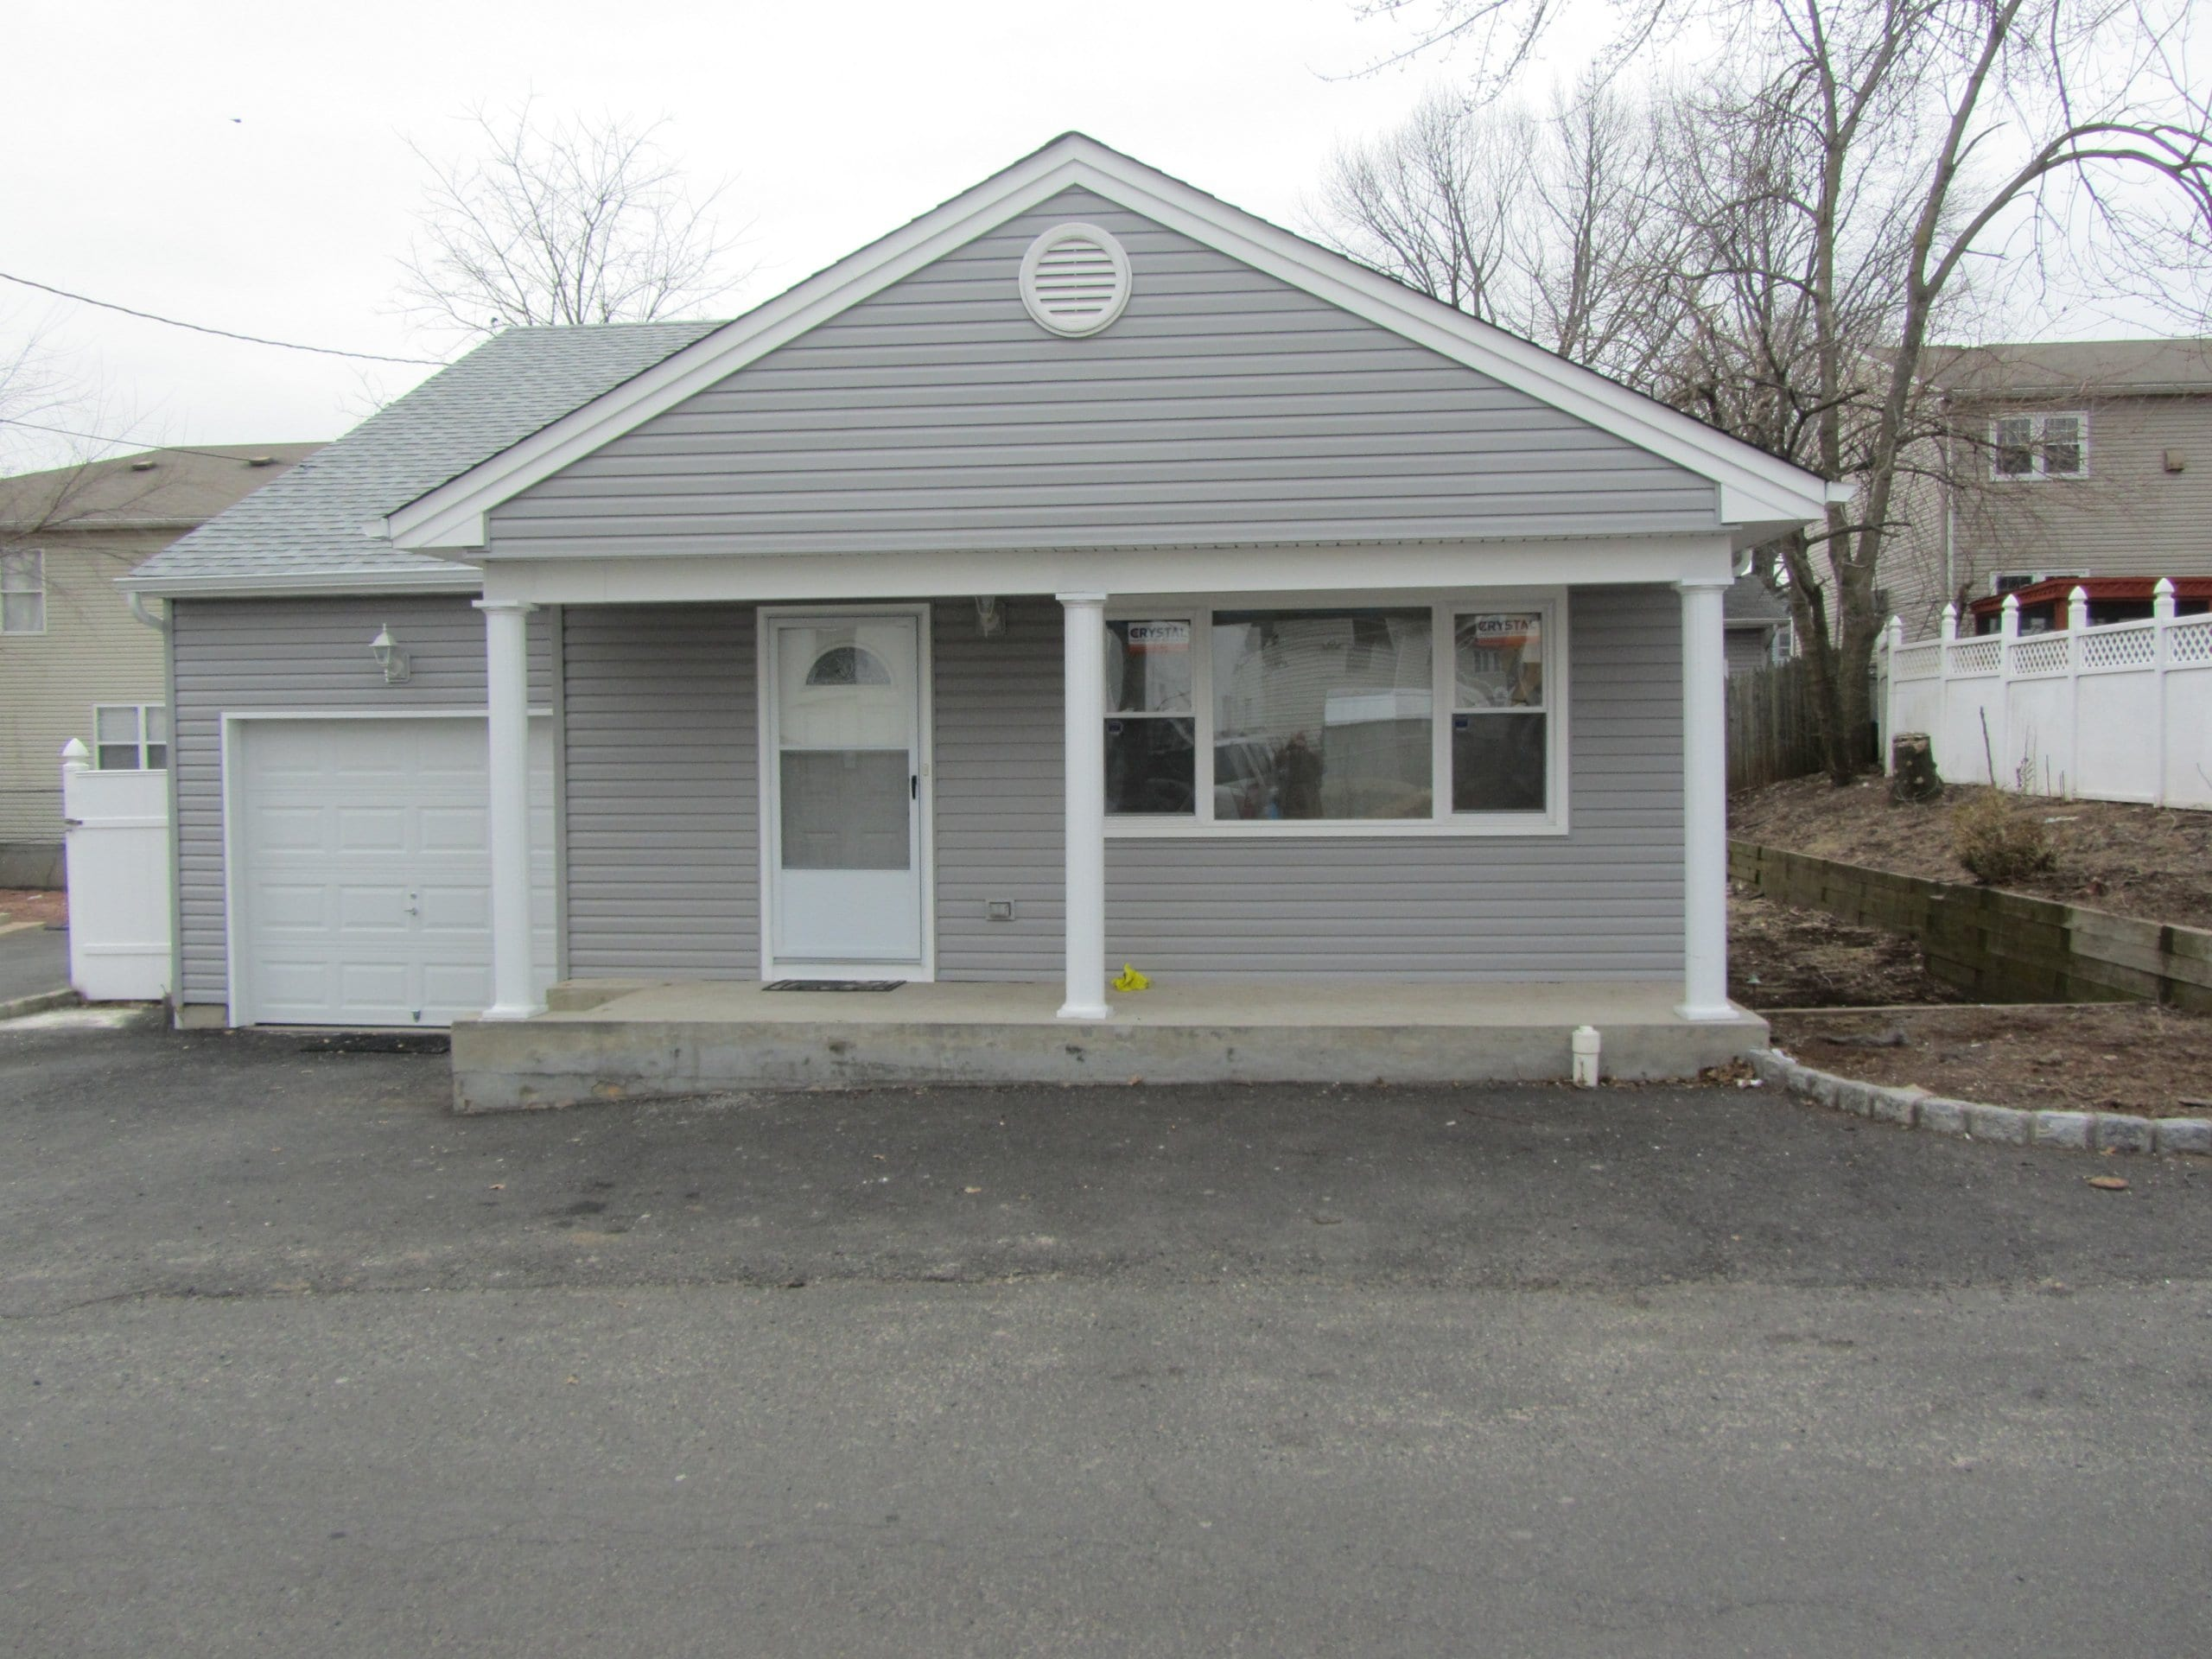 3 Bedroom Townhouses In Linden Nj 28 Images Condo Townhouse For Rent At 29 E Linden Ave